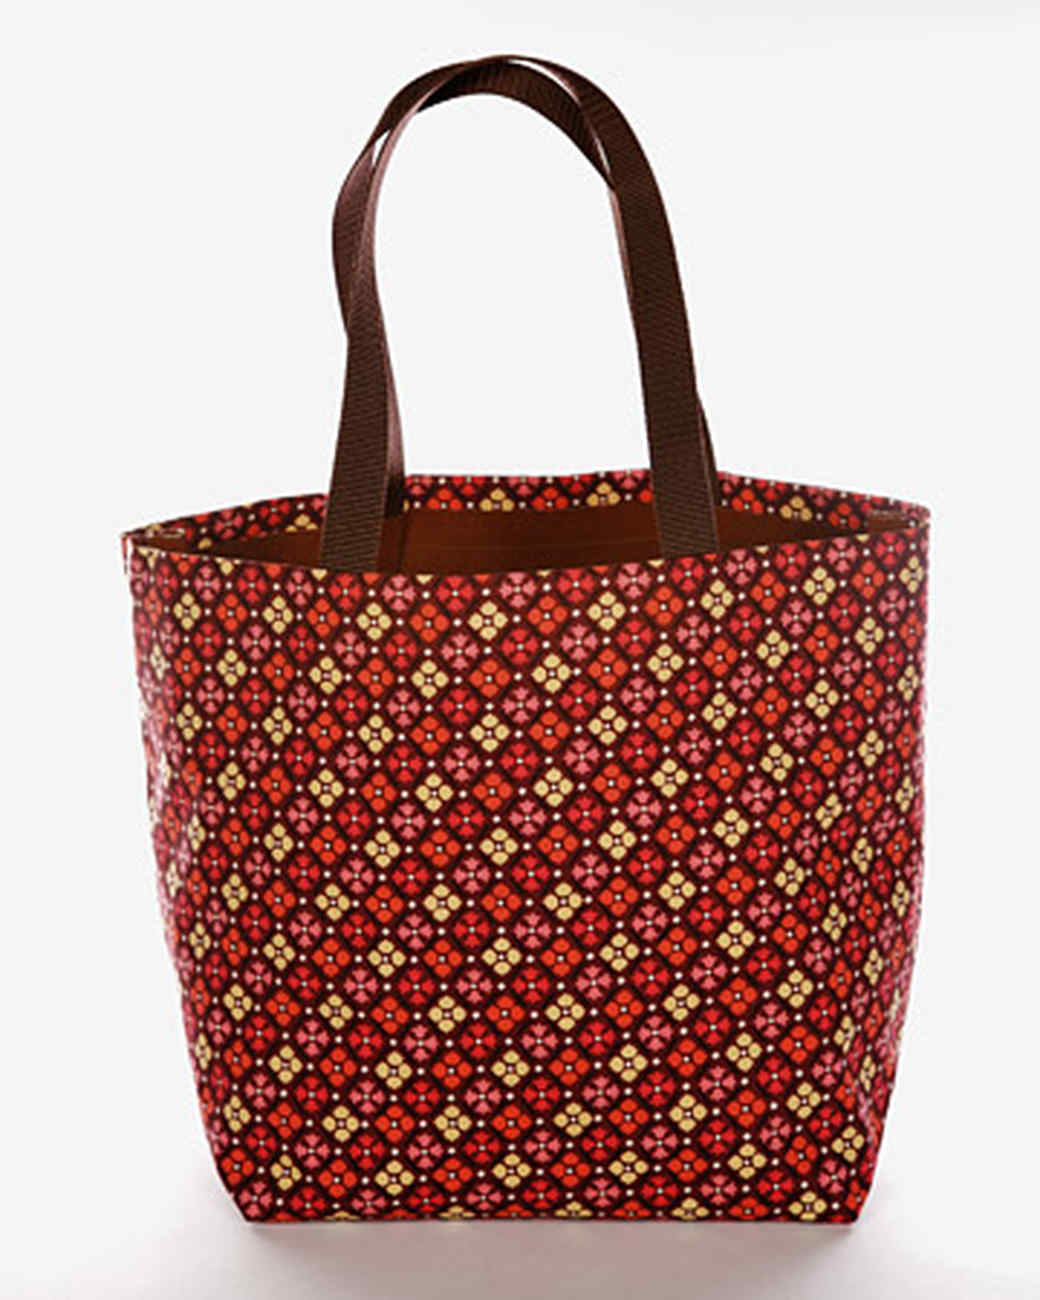 No-Sew Tote Bags